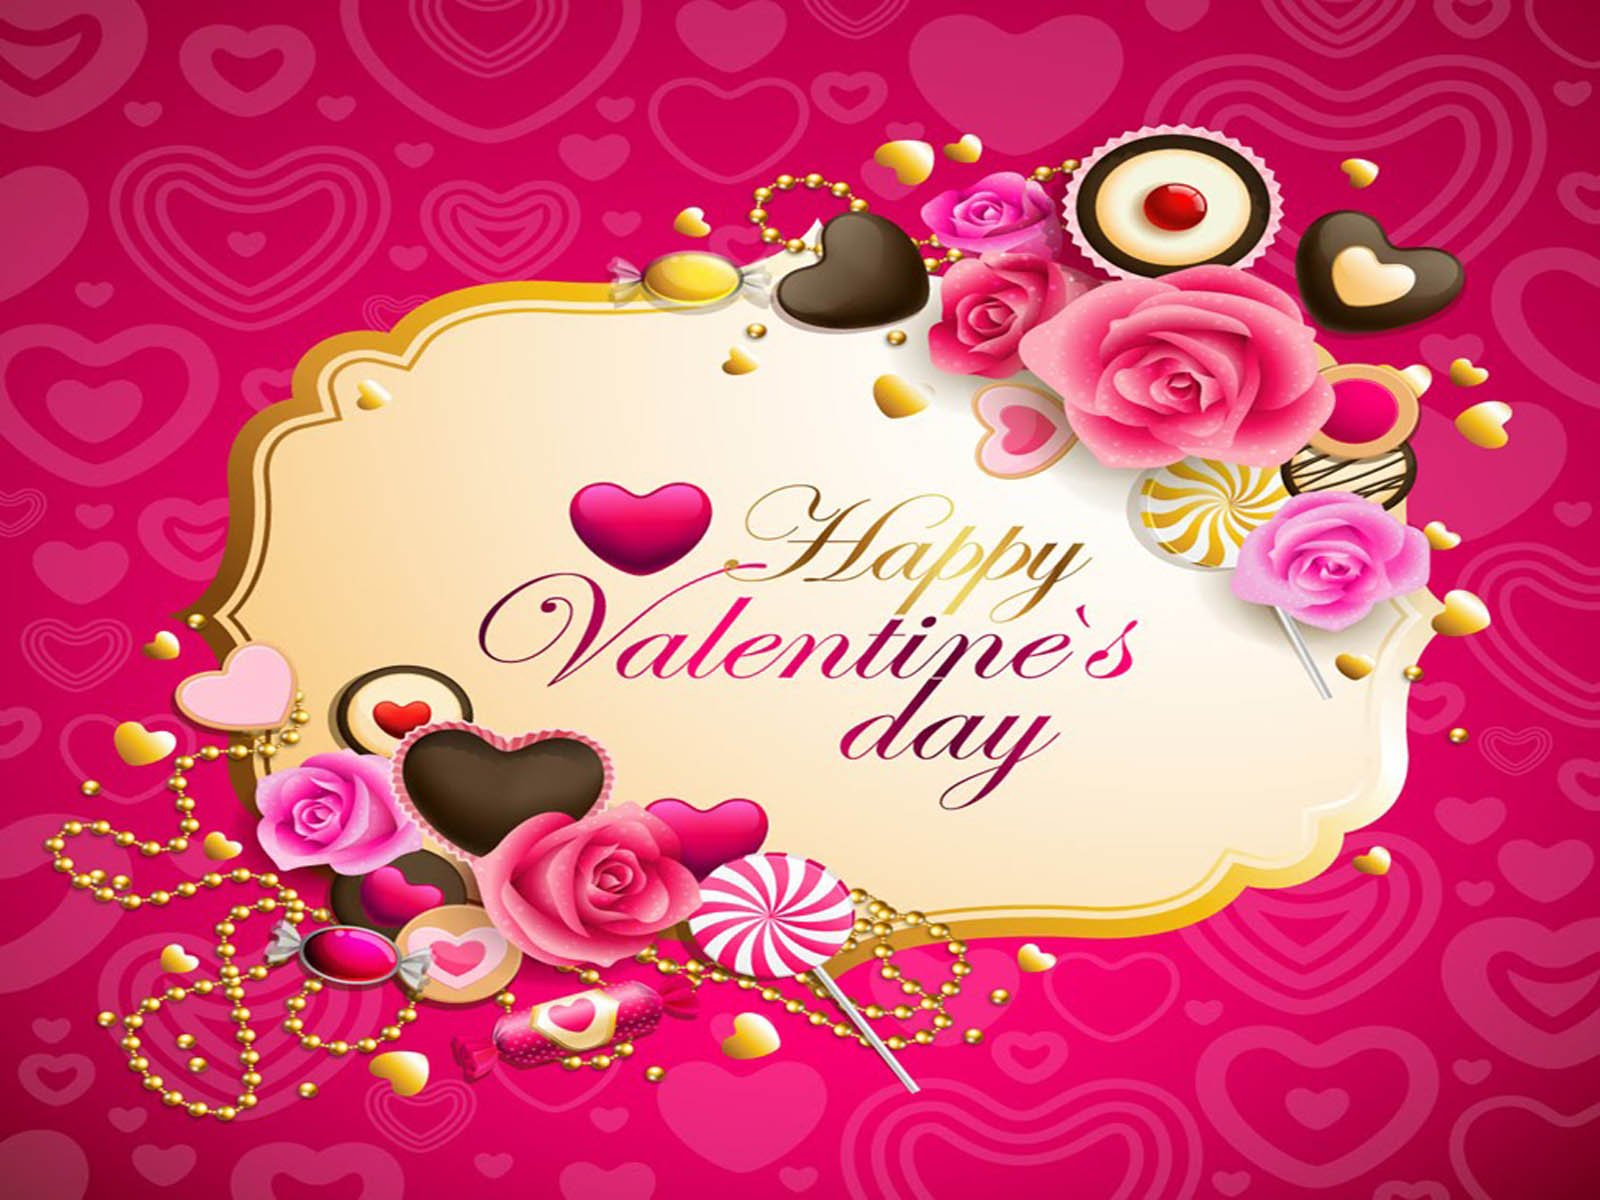 Day Wallpapers Valentines Day Desktop Wallpapers Valentines Day 1600x1200